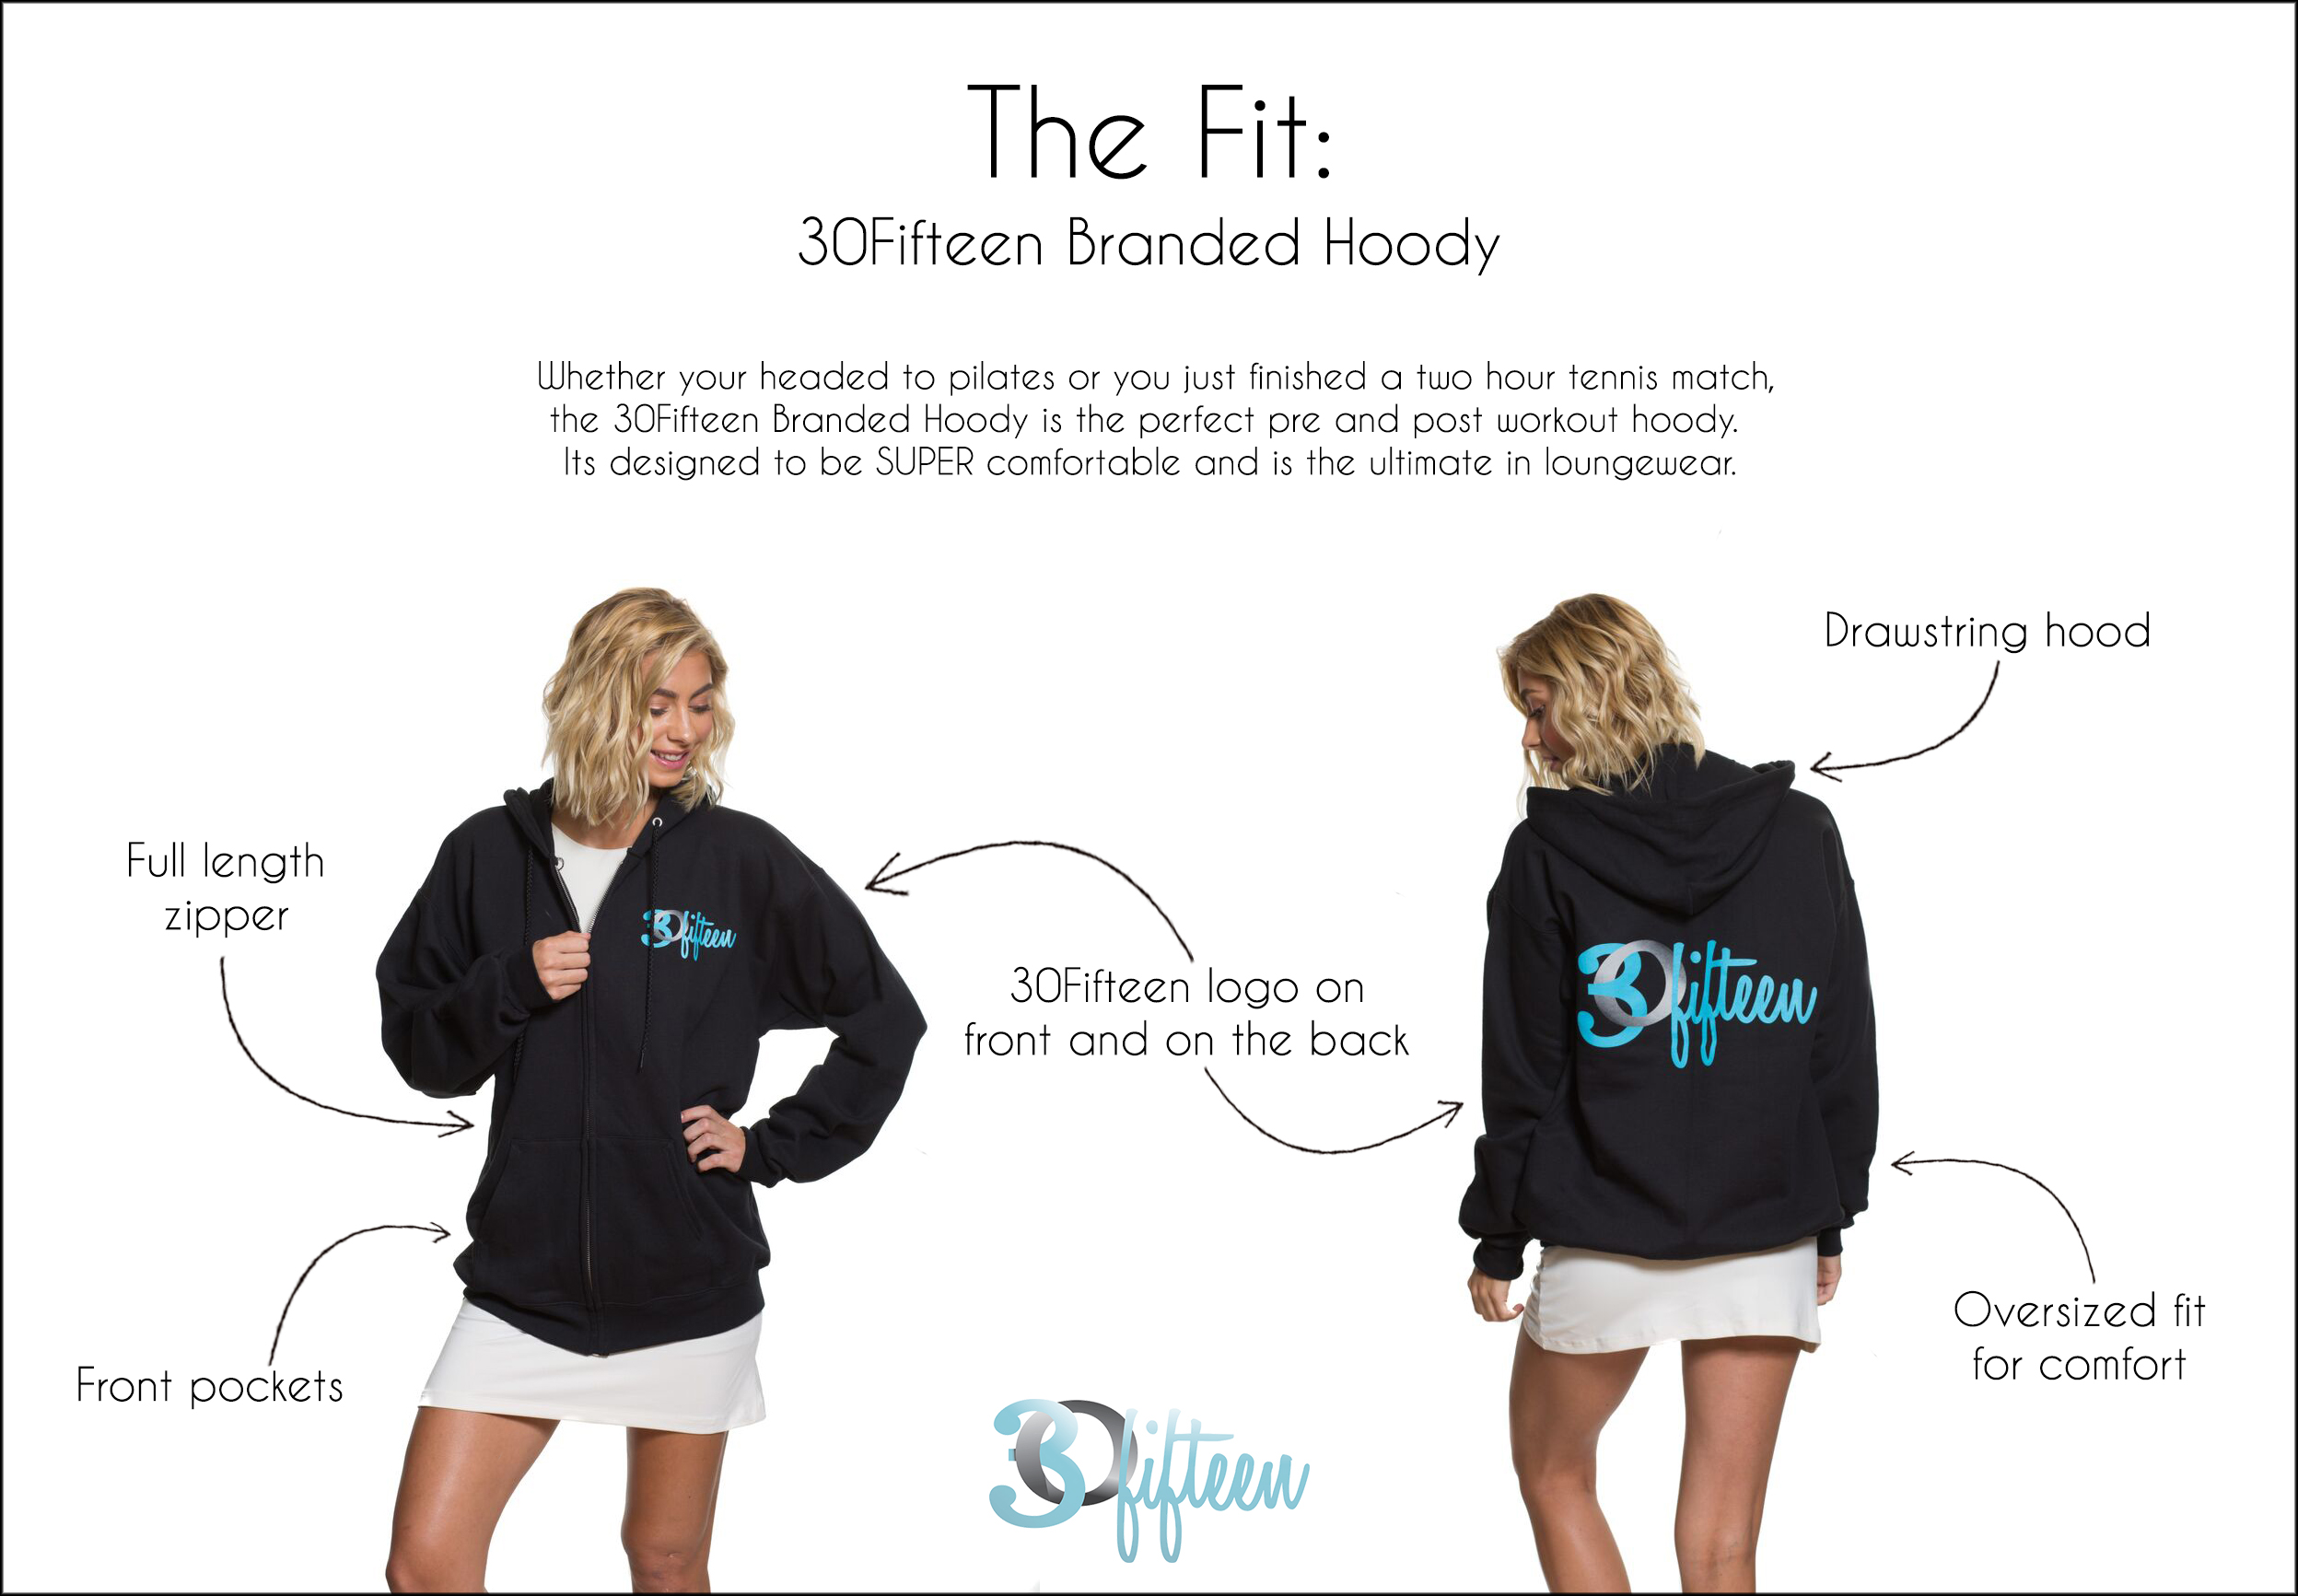 30fifteen-branded-hoody-fashion